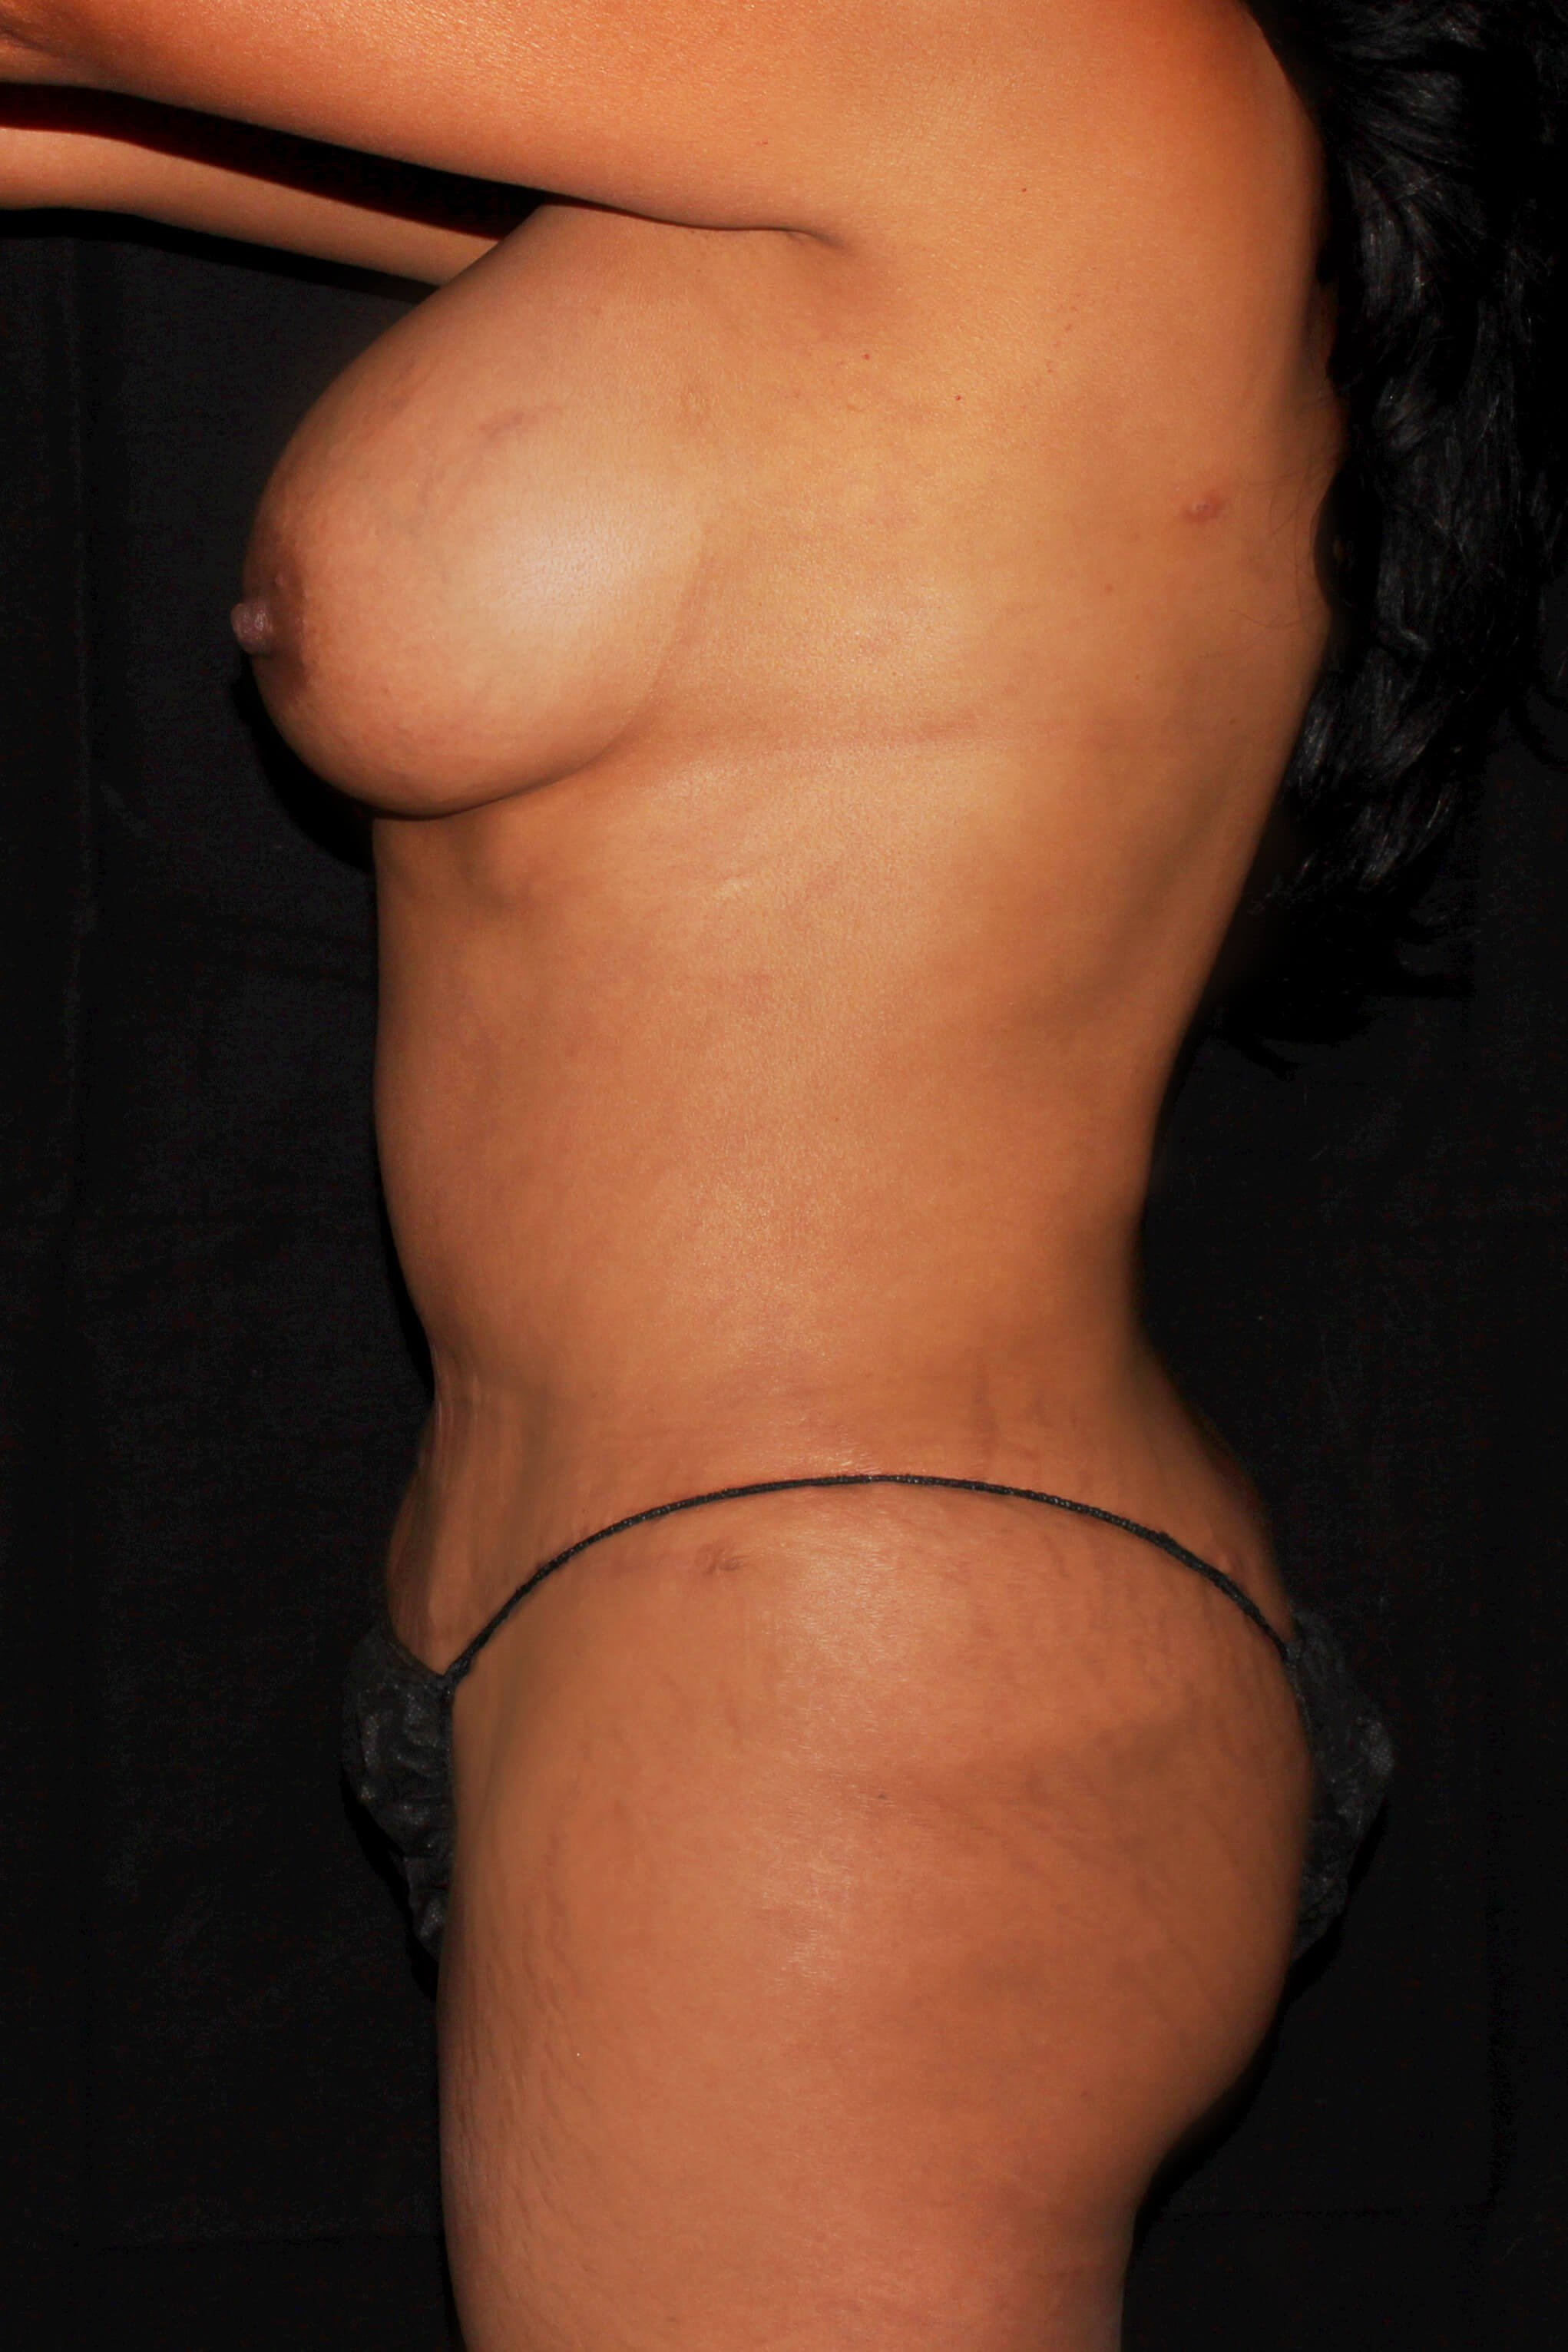 Breast Augmentation and Mommy Makeover After - Left View